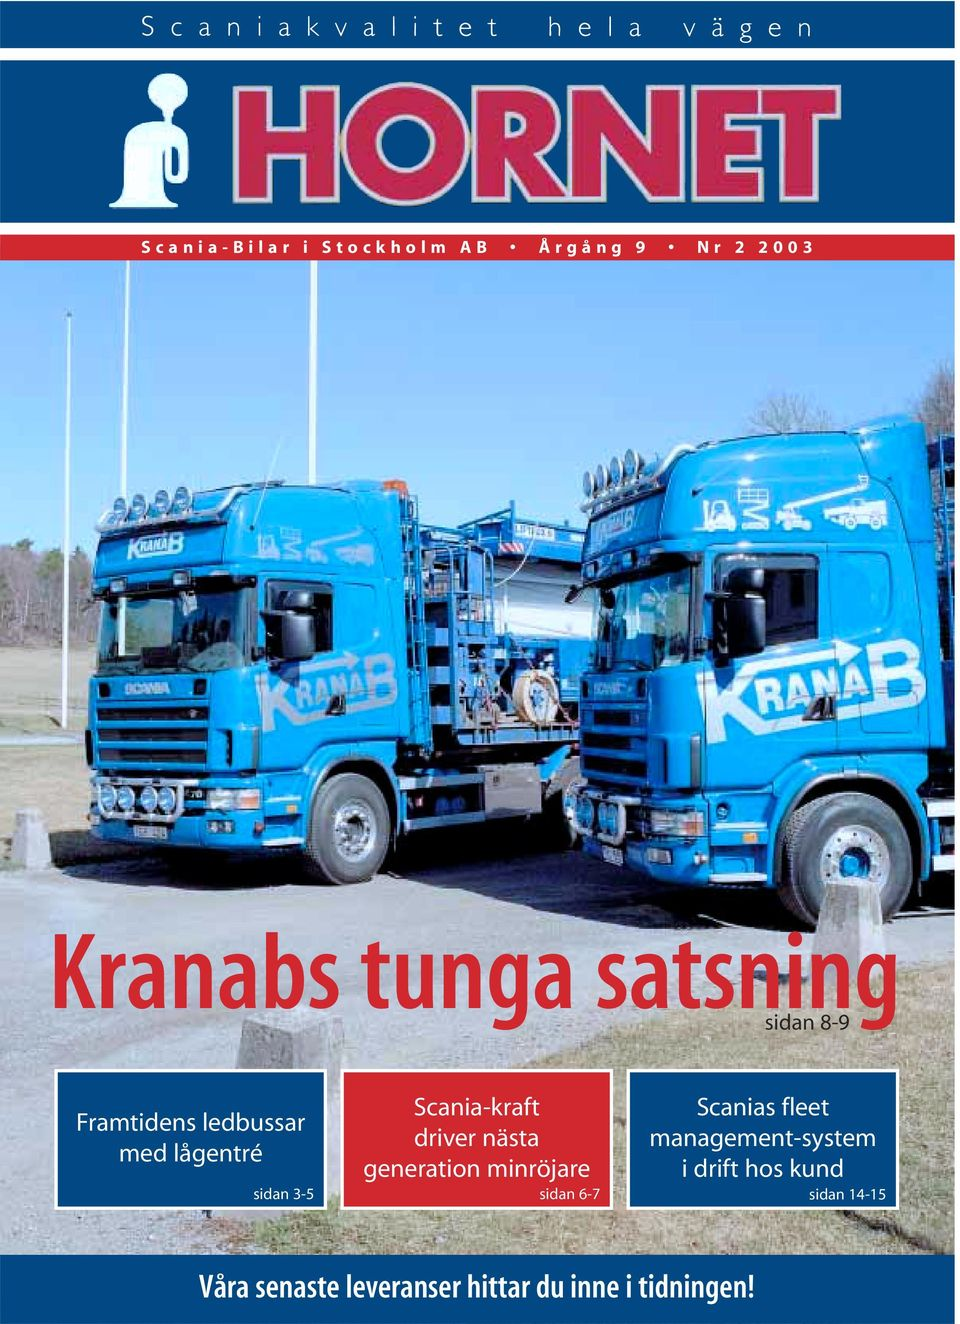 generation minröjare Scanias fleet management-system i drift hos kund